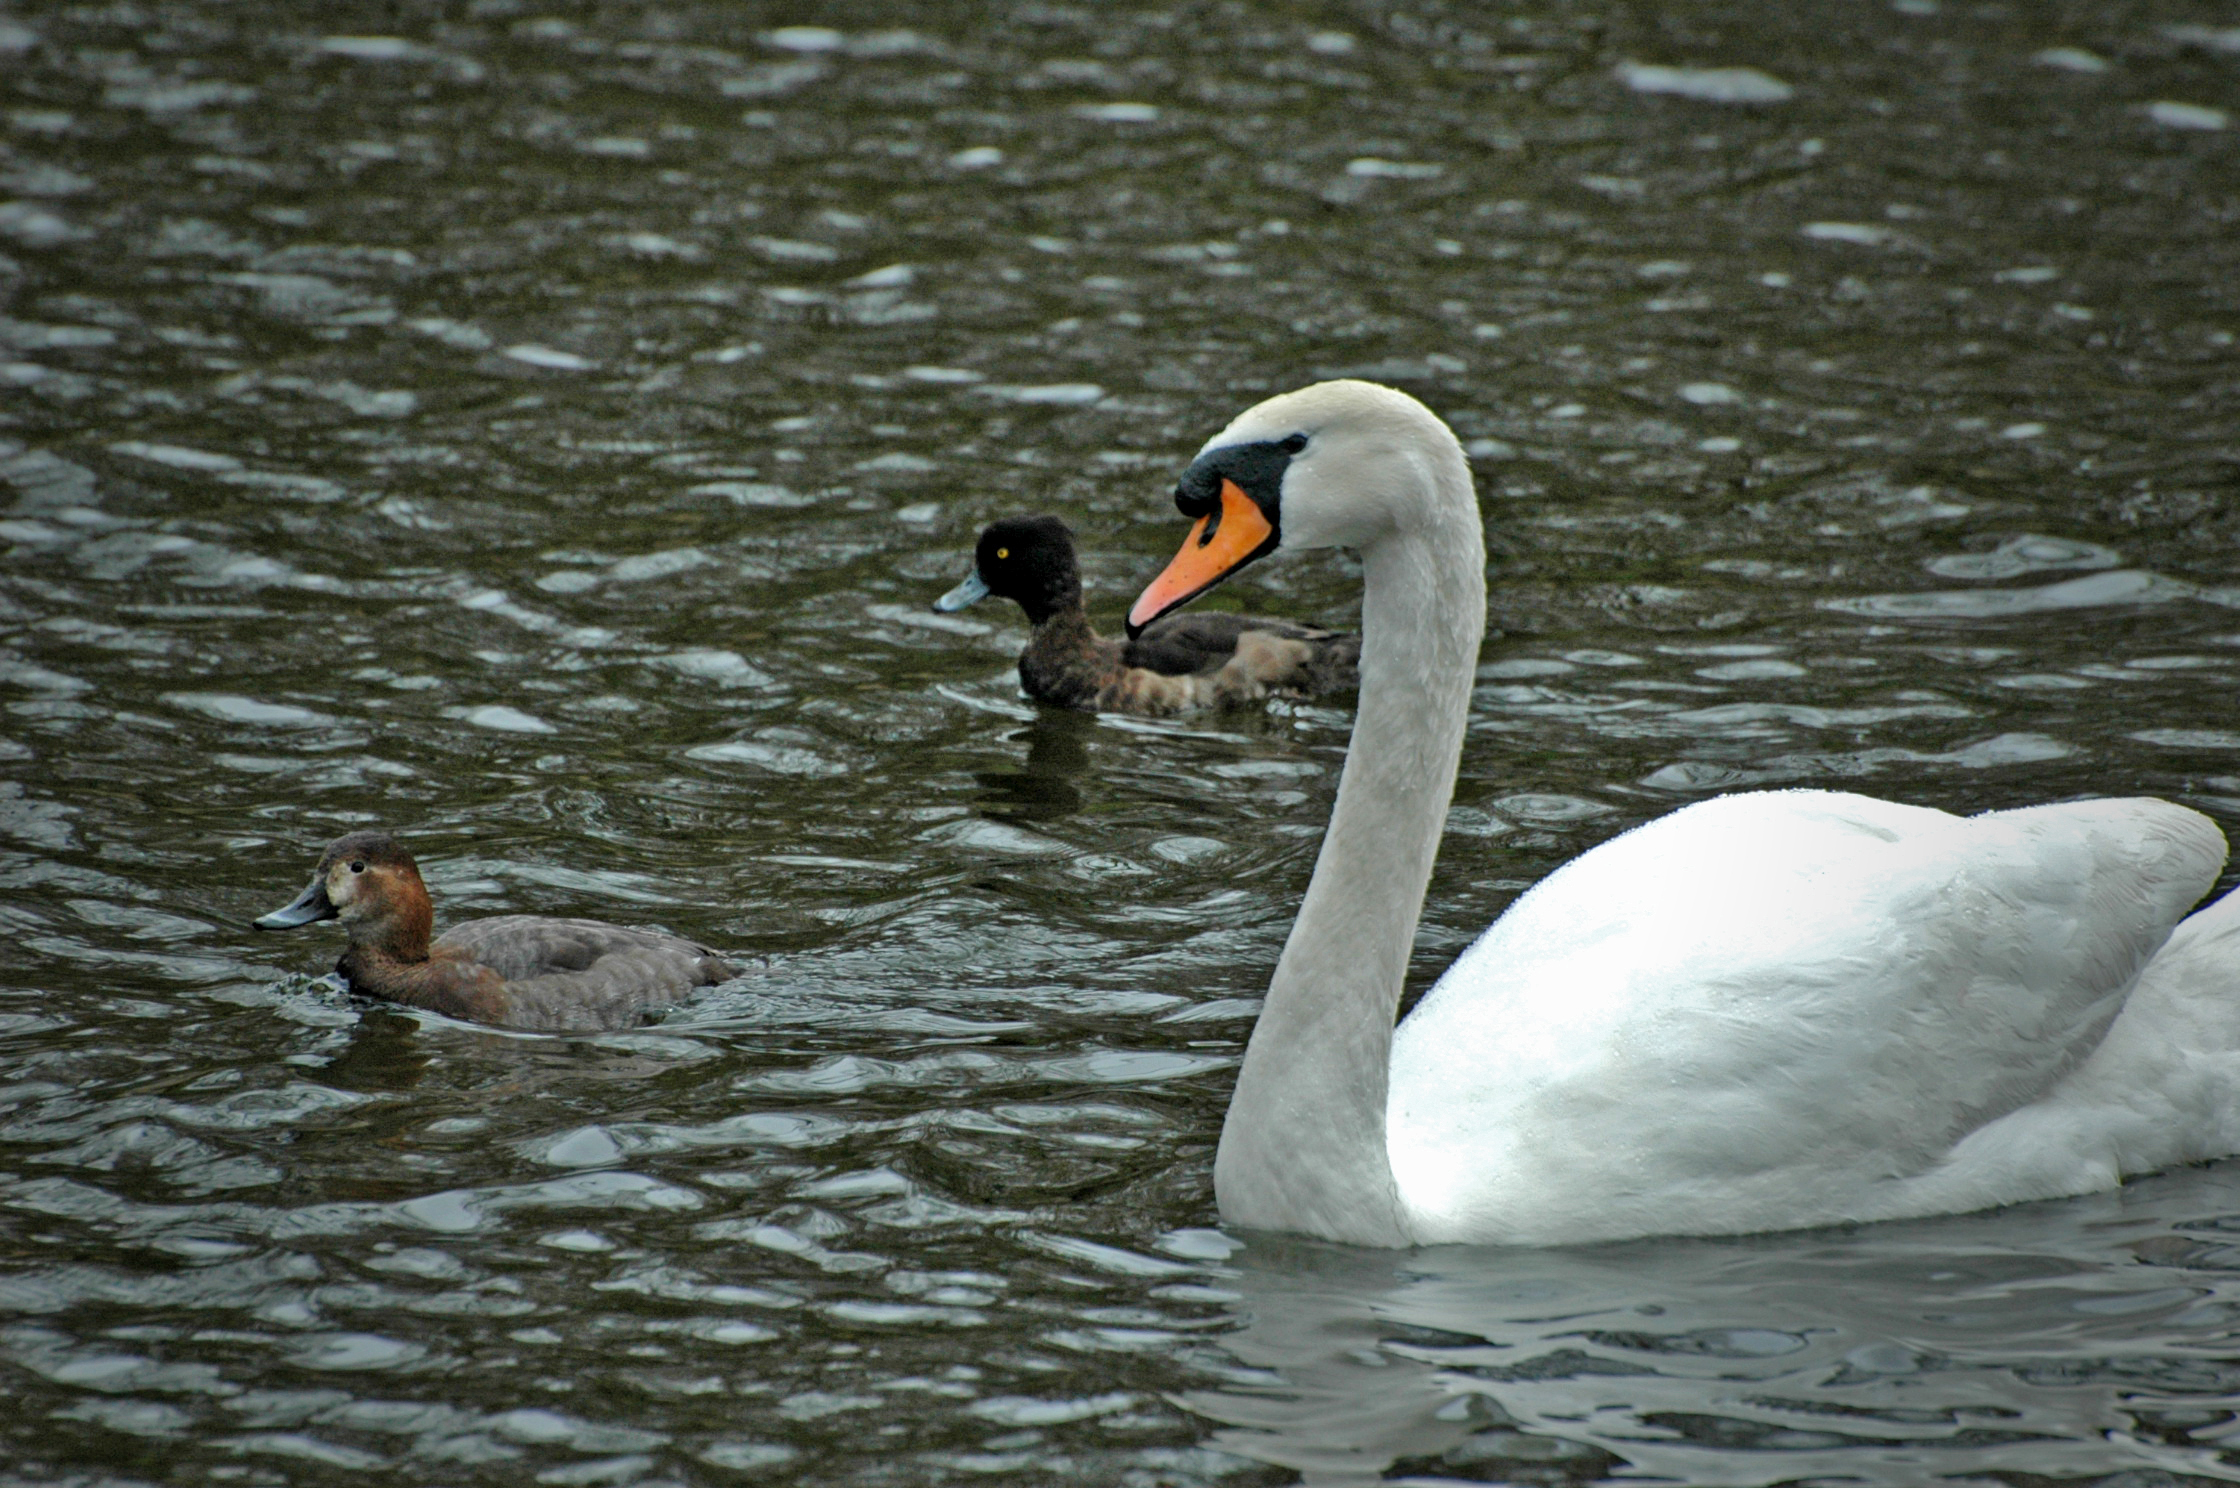 Swan and ducks